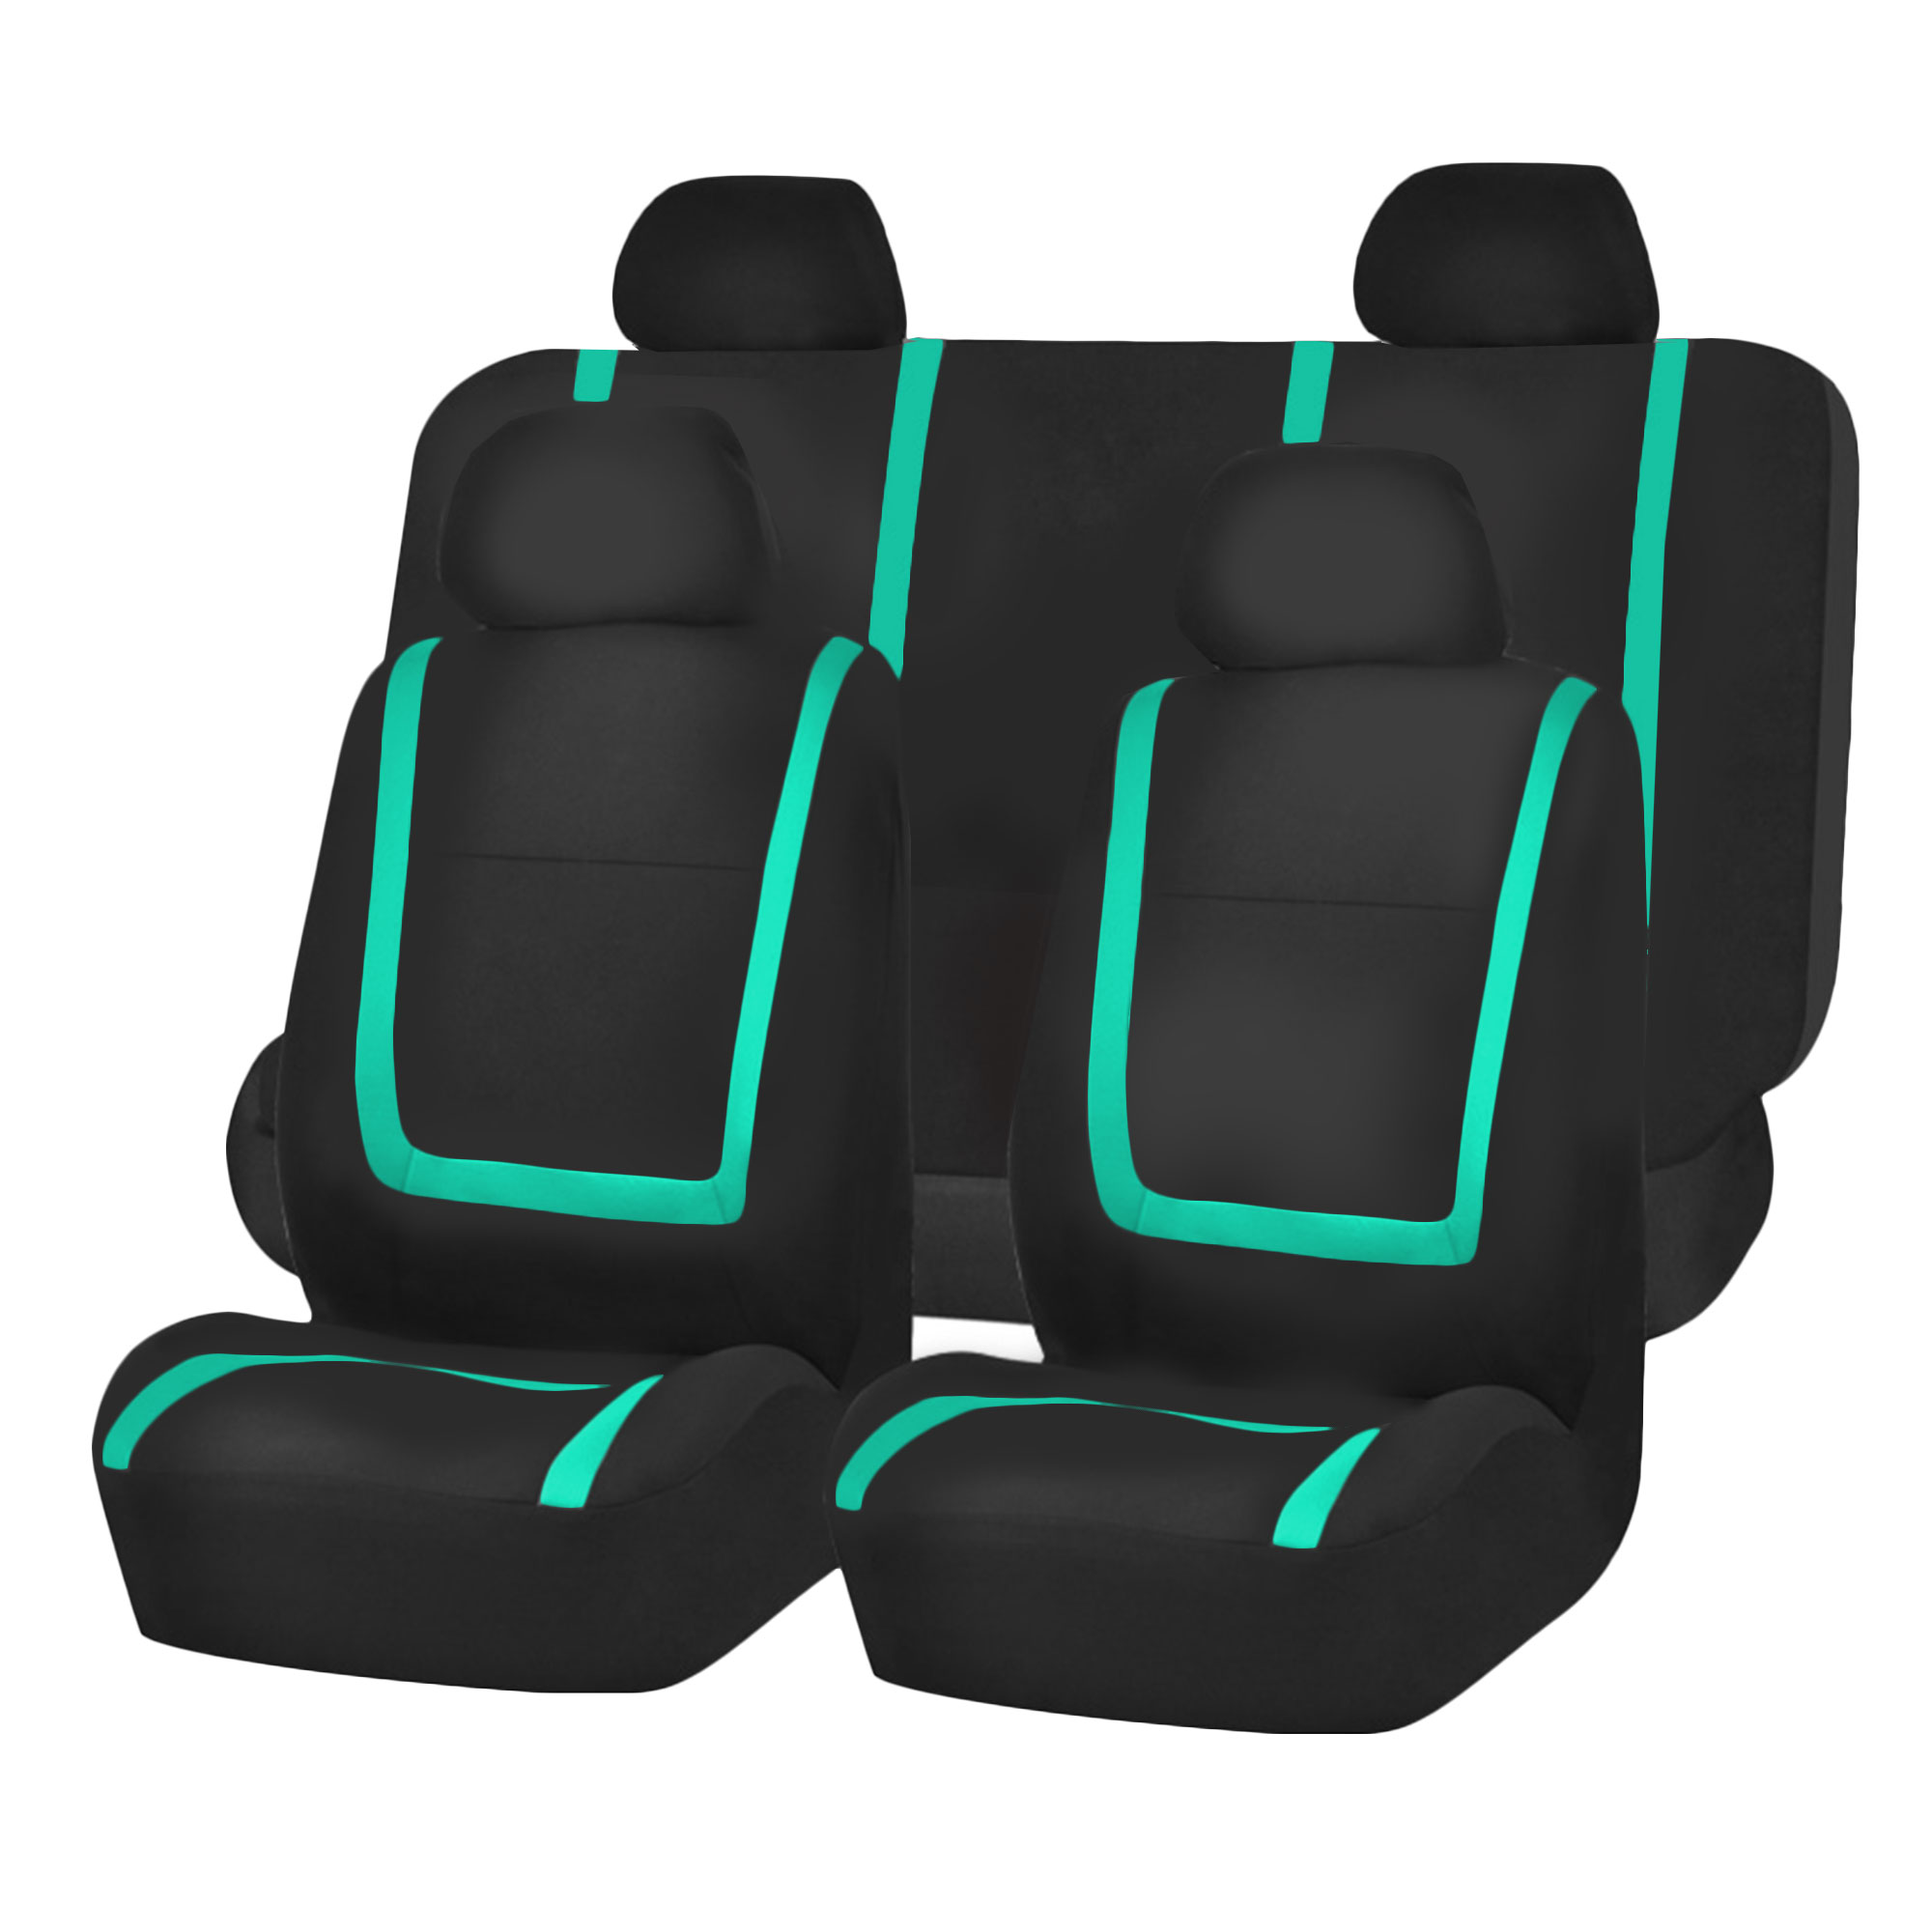 Auto Seat Covers for Car Sedan Truck Van Universal Seat Covers 12 Colors Mint